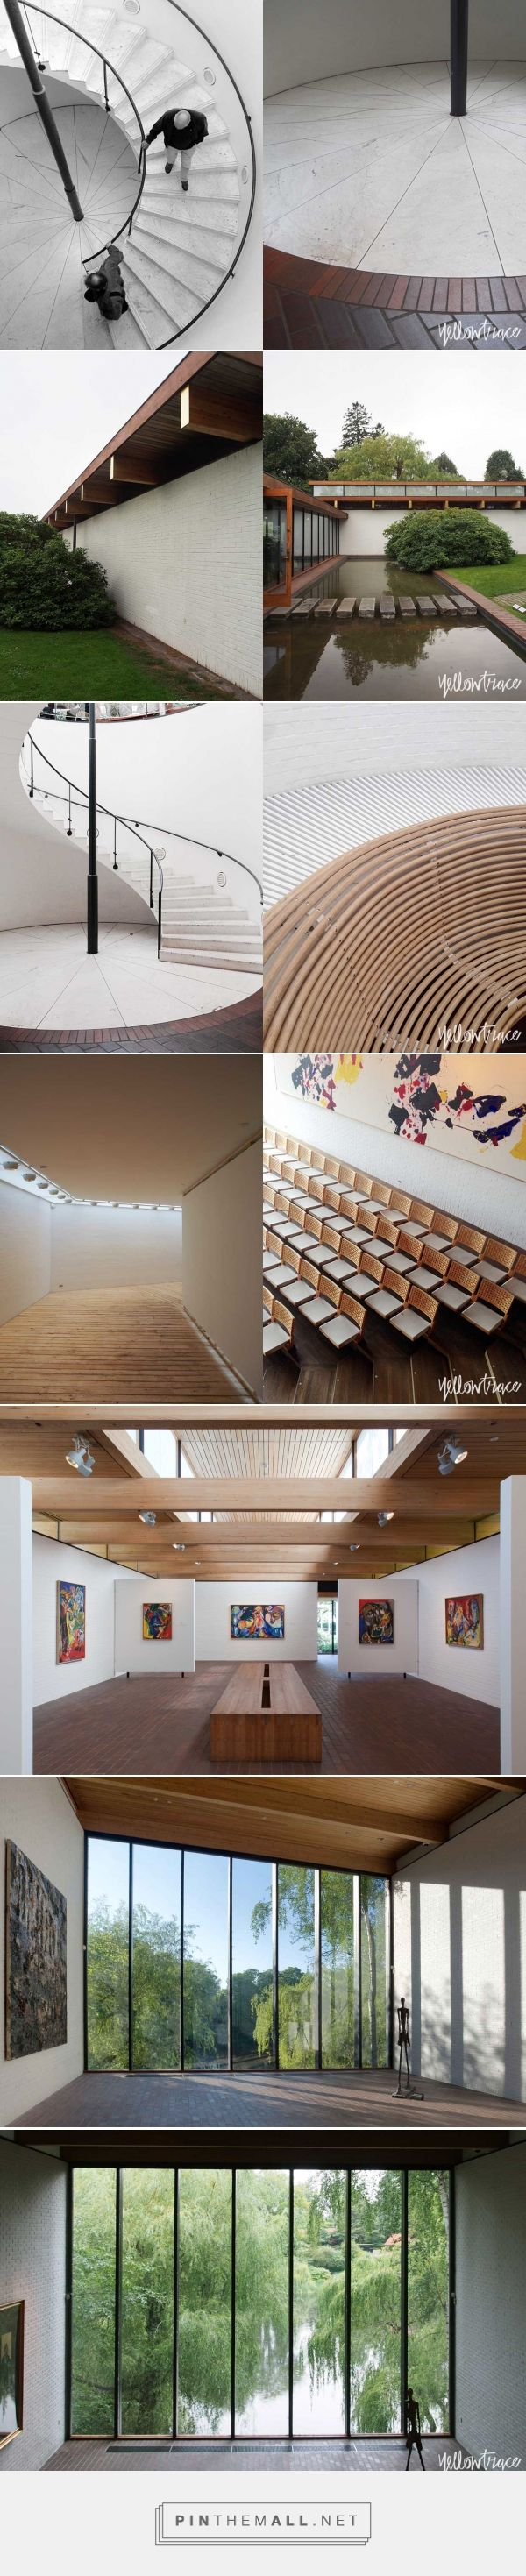 149 best architecture - it\u0027s all good images on Pinterest ...